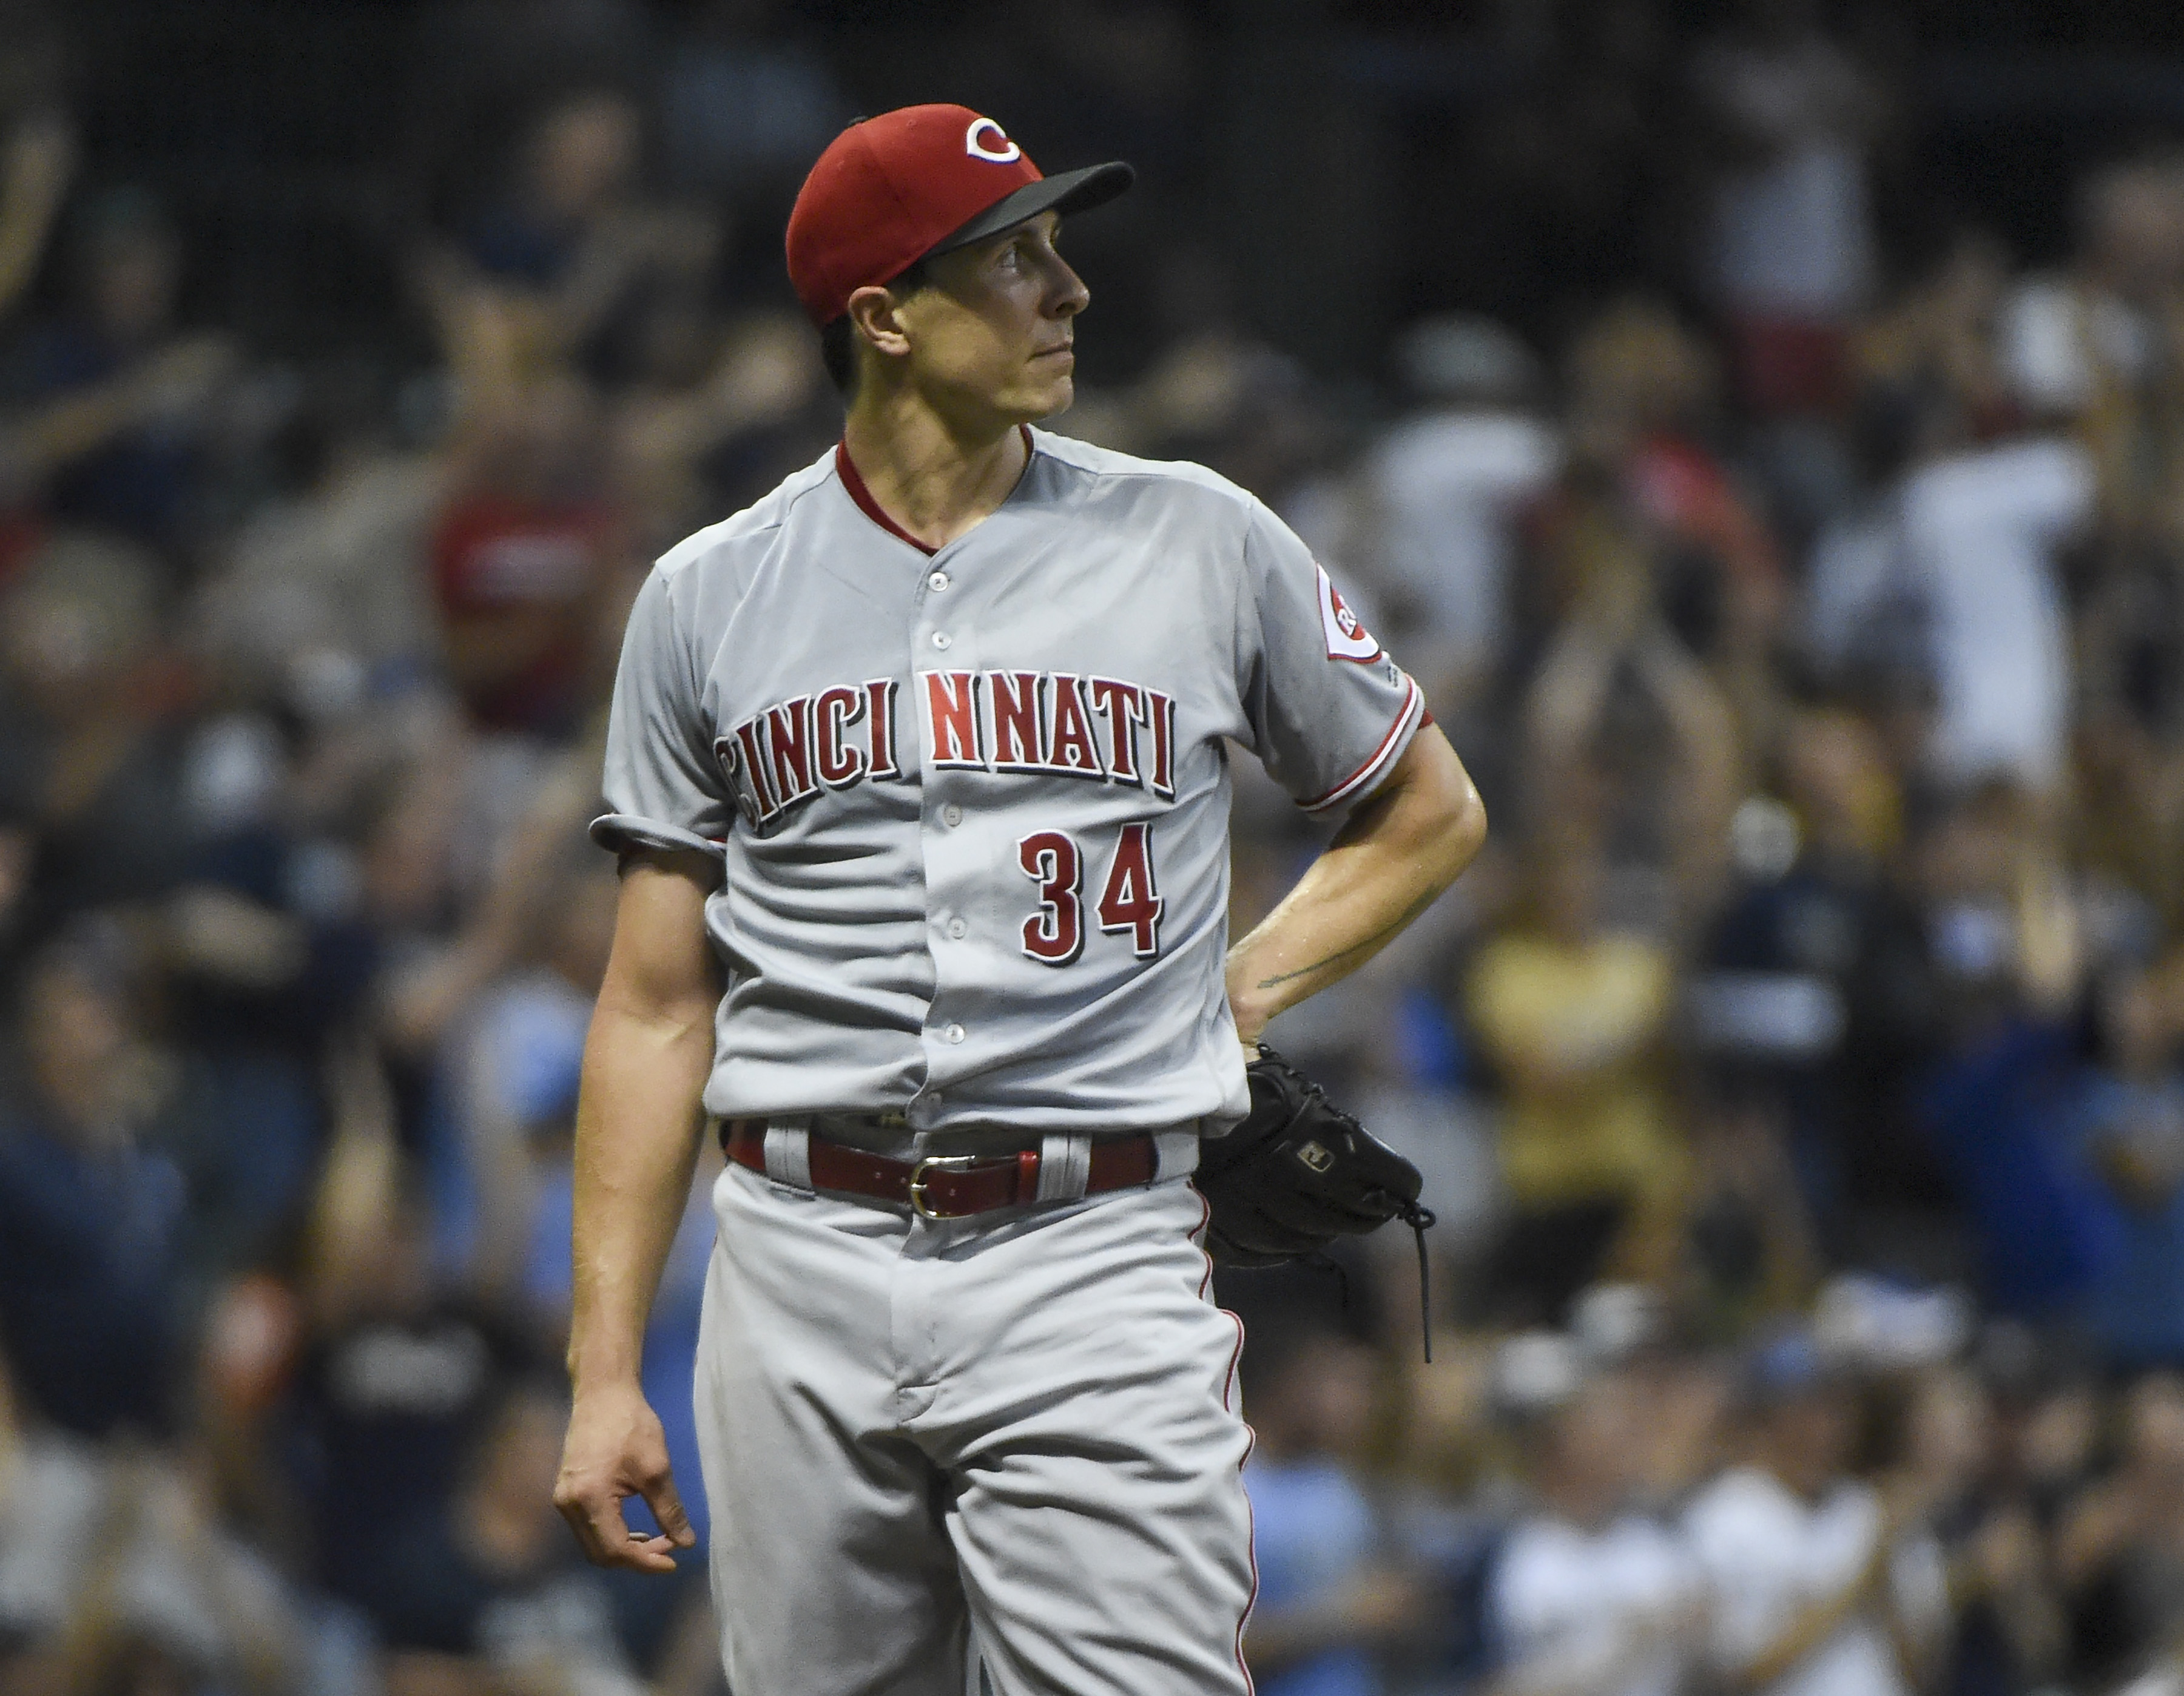 Cincinnati Reds can't win with Homer Bailey on the mound